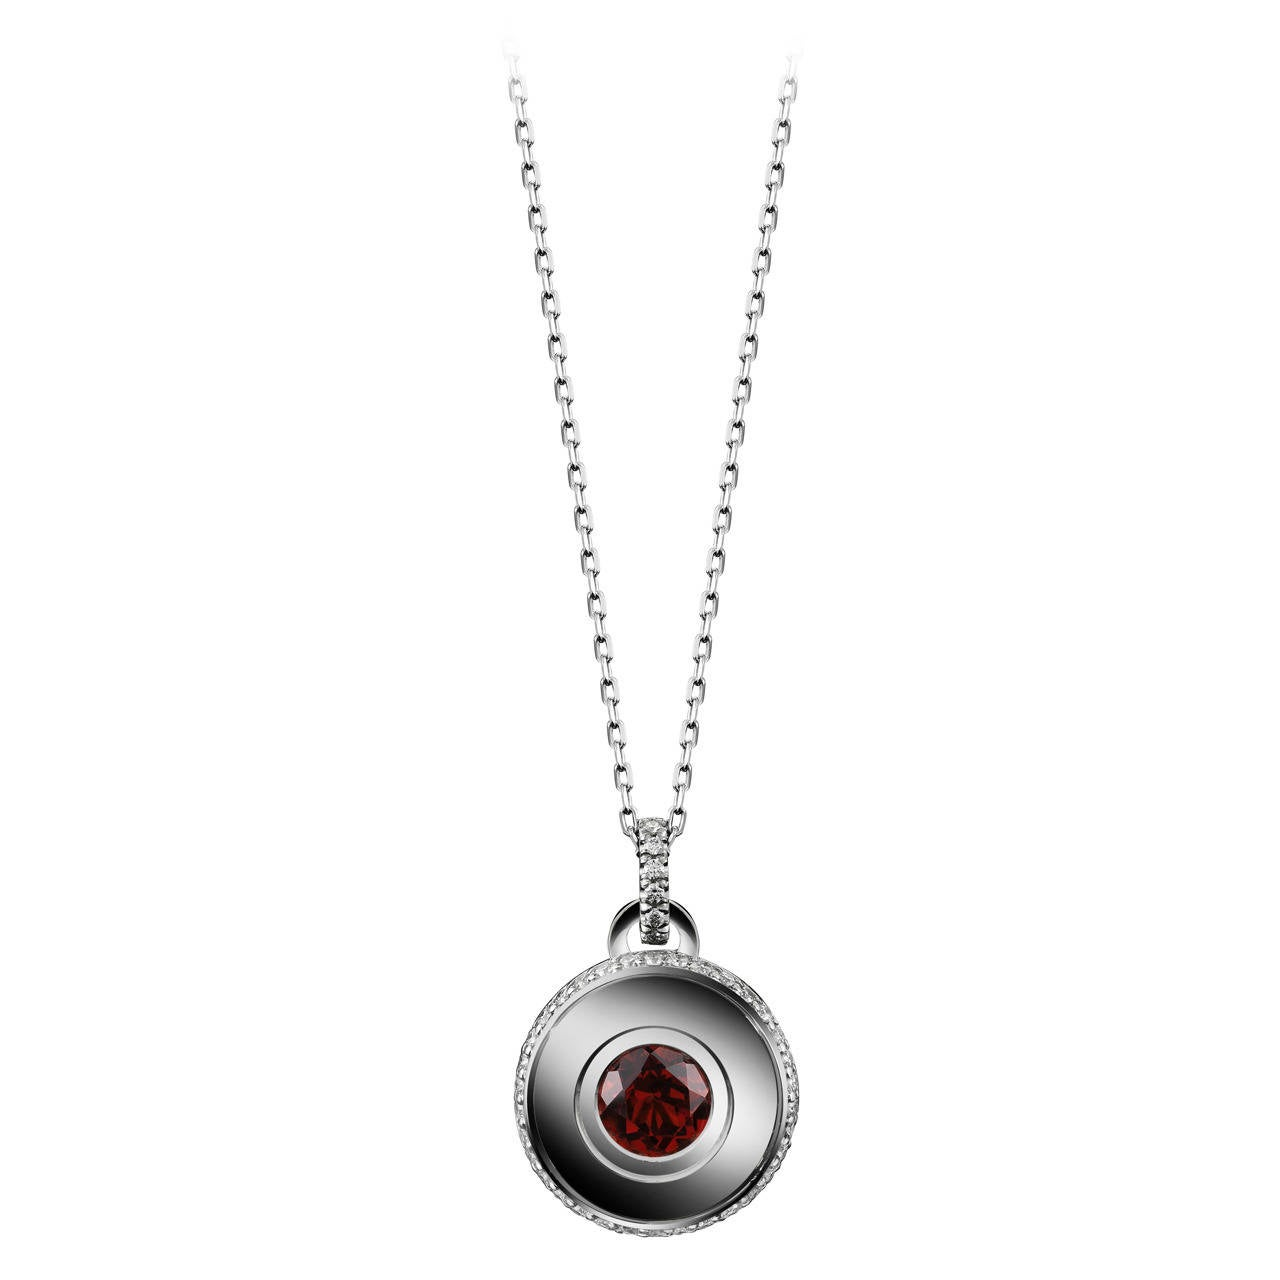 Alexandra Mor Round Brilliant-Cut Garnet and Diamond January Birthstone Pendant